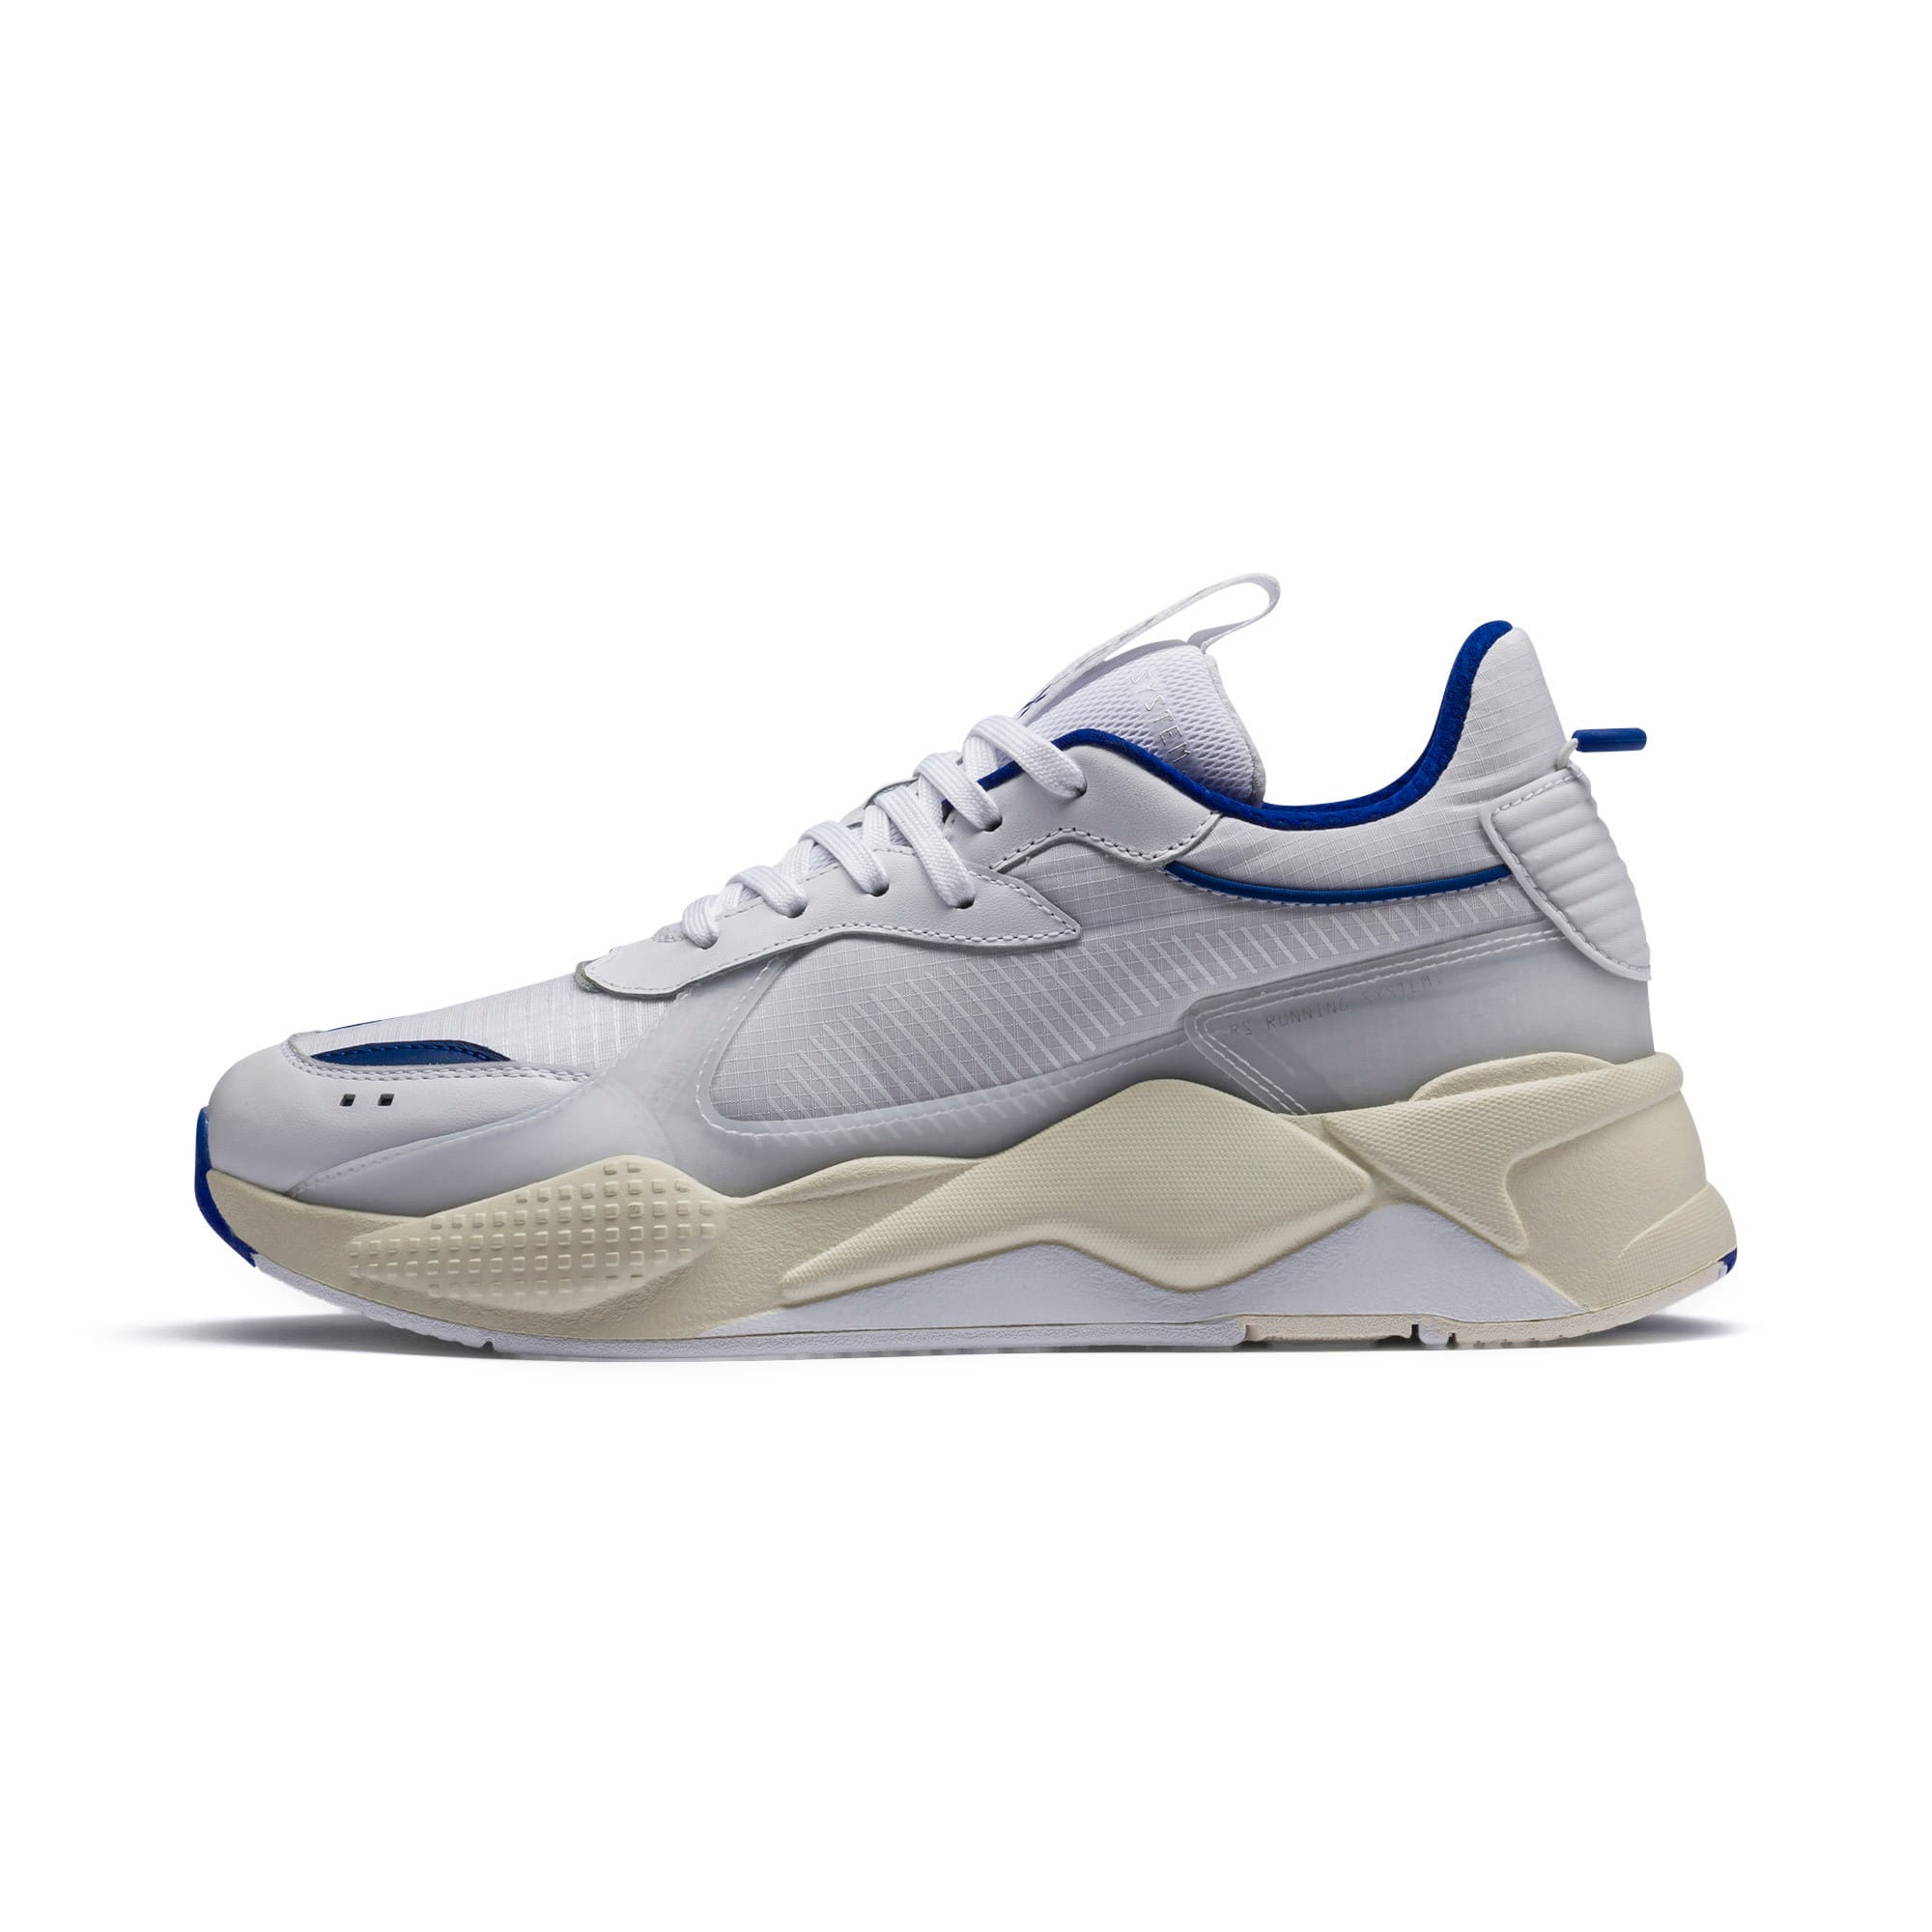 Thumbnail 1 of RS-X Tech Sneaker, Puma White-Whisper White, medium